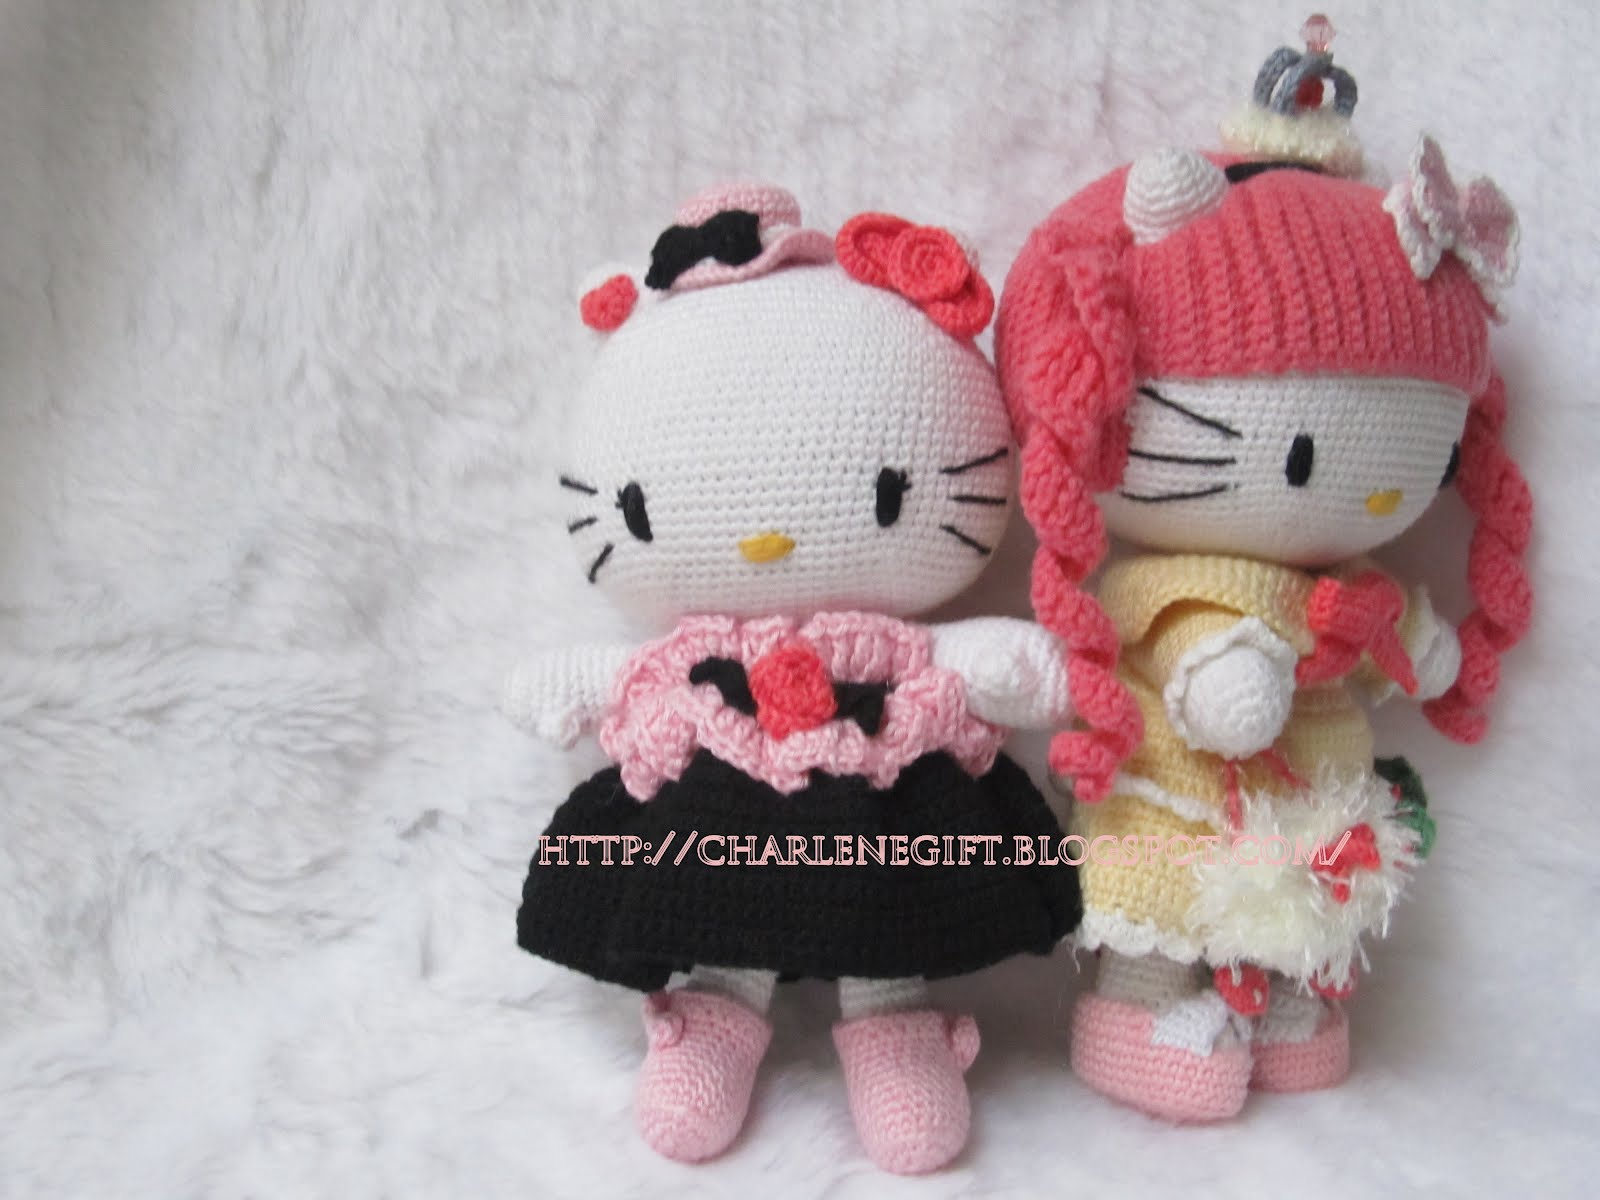 Amigurumi @ Charlene Gift n Craft: Special request Hello ...